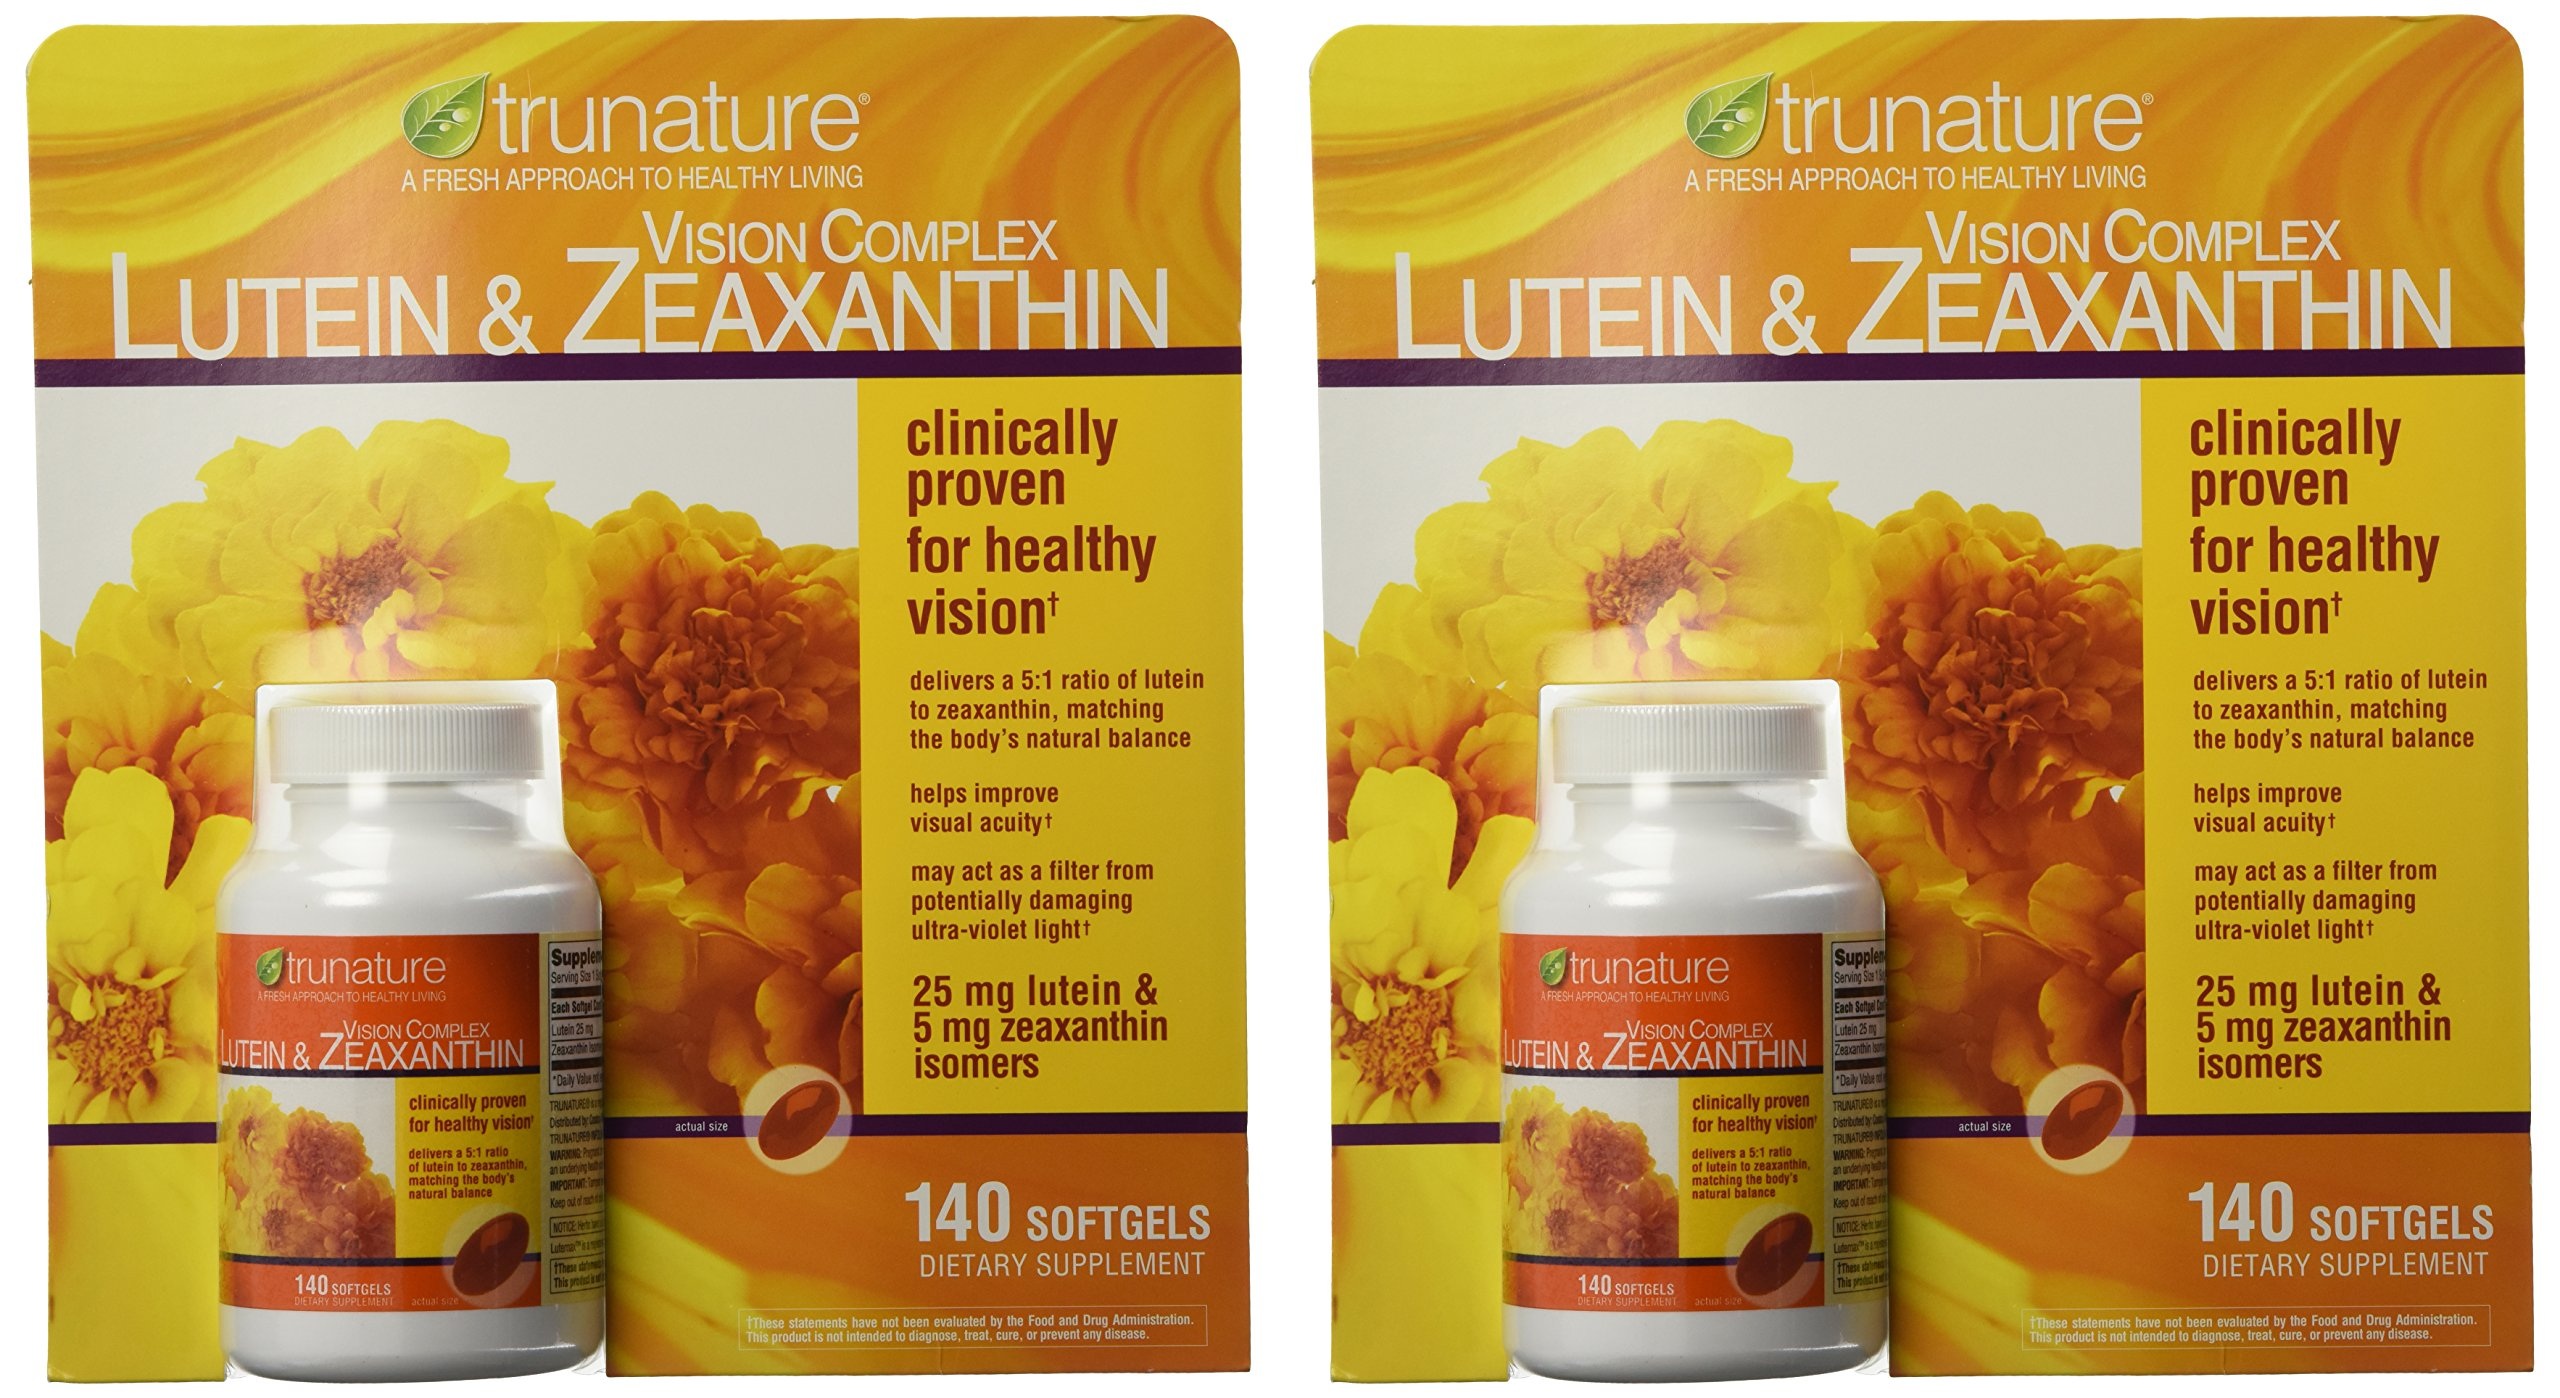 TruNature Vision Complex with Lutein & Zeaxanthin - Great Value Pack of 2 (Total 280Ct Softgel Type) xnccswa by TruNature